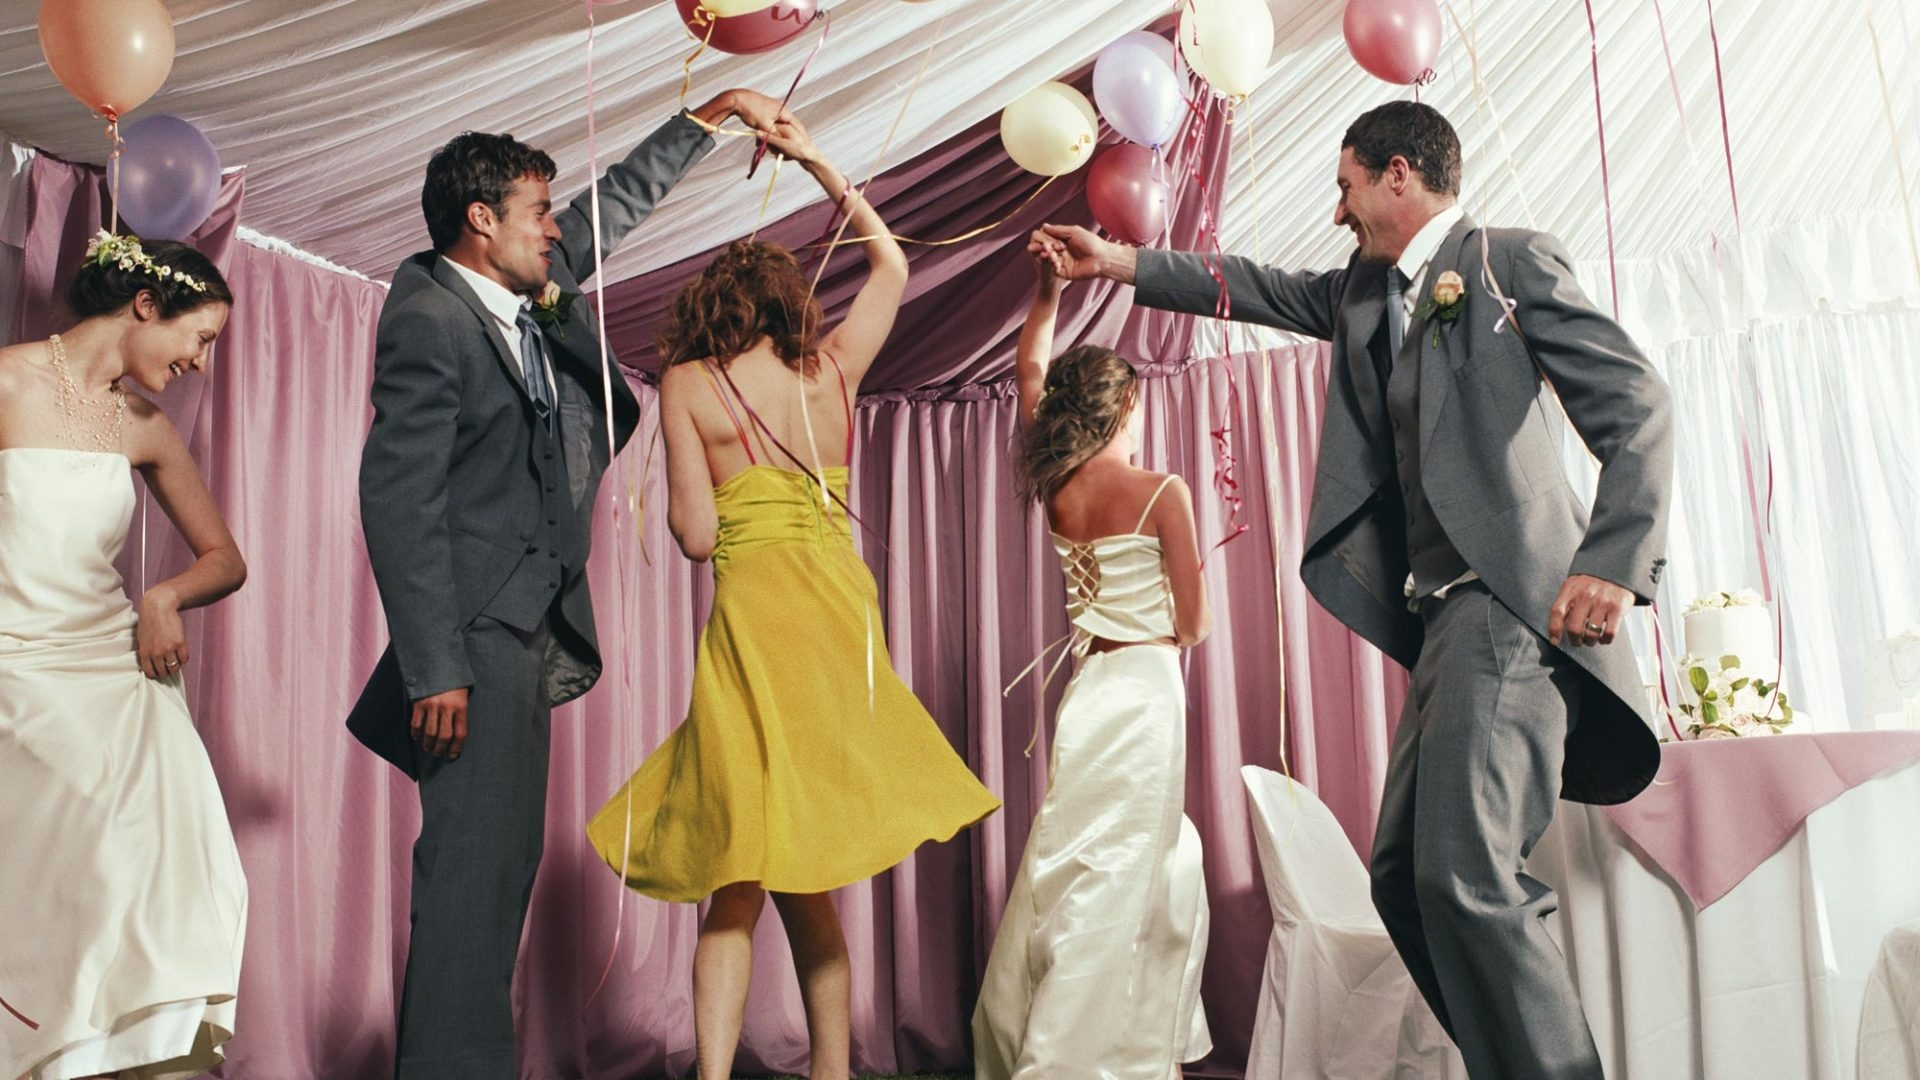 Wedding-Guest-dos-and-donts-1920x1080.jpg